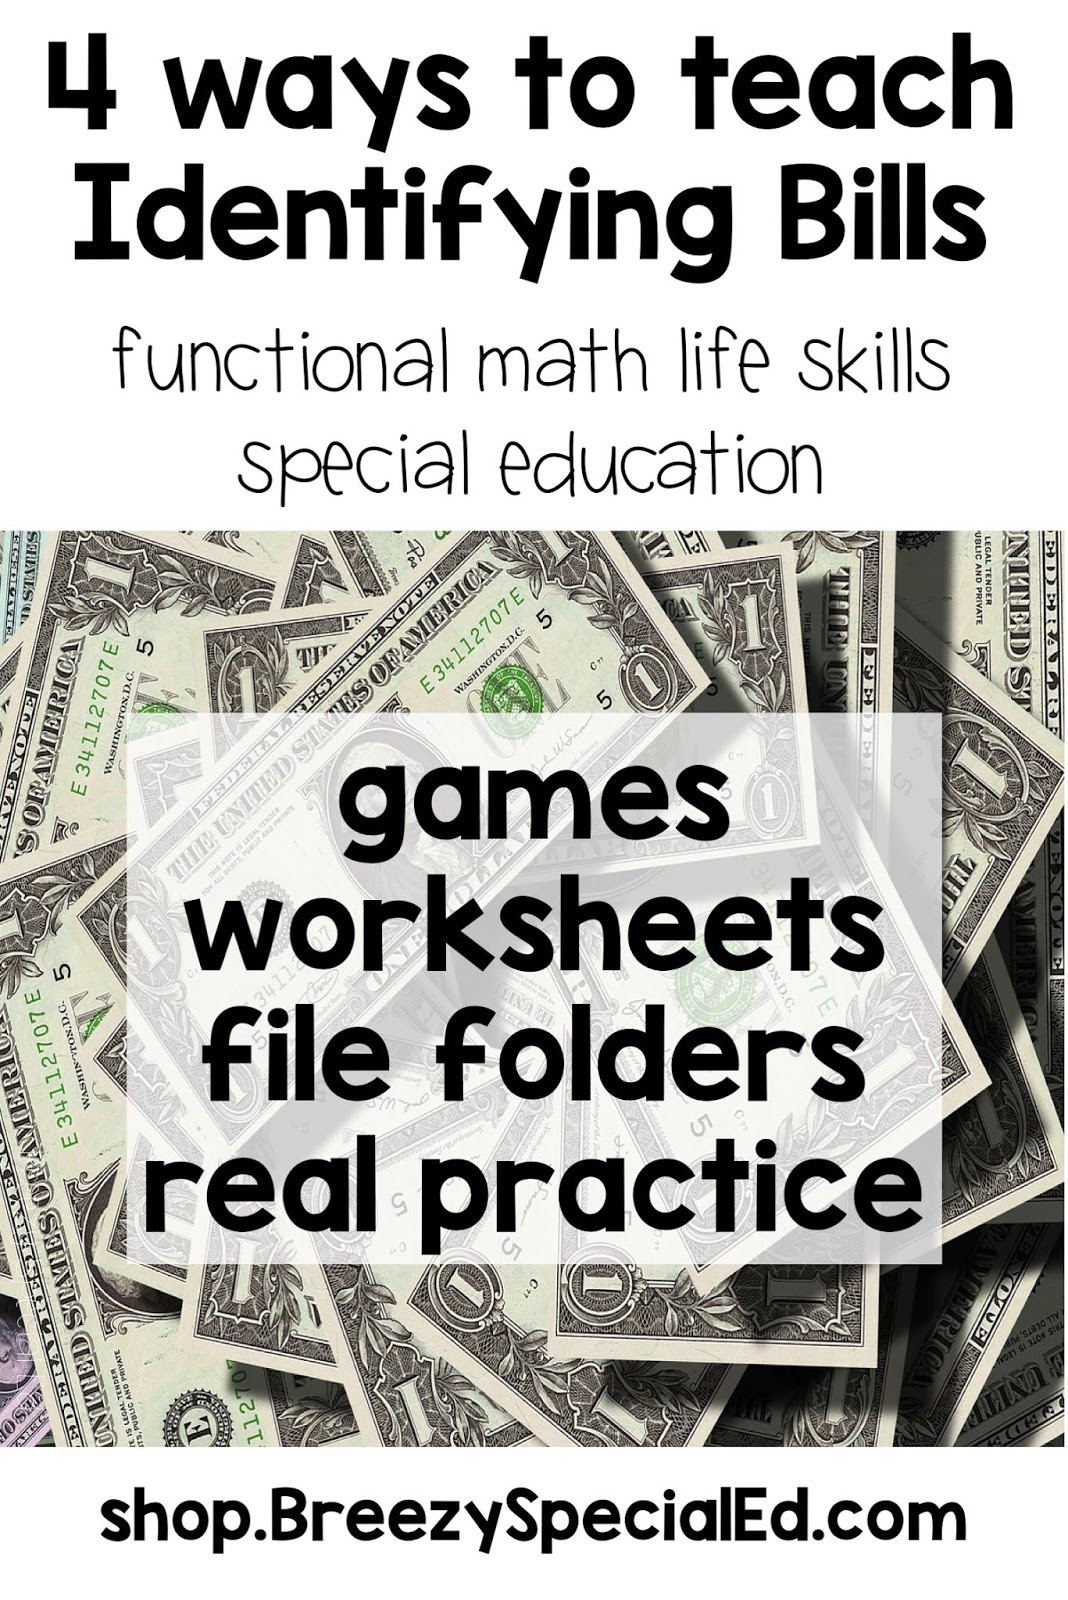 Functional Math Worksheets Special Education Making Money Iep Goals More Functional Breezy Special Ed